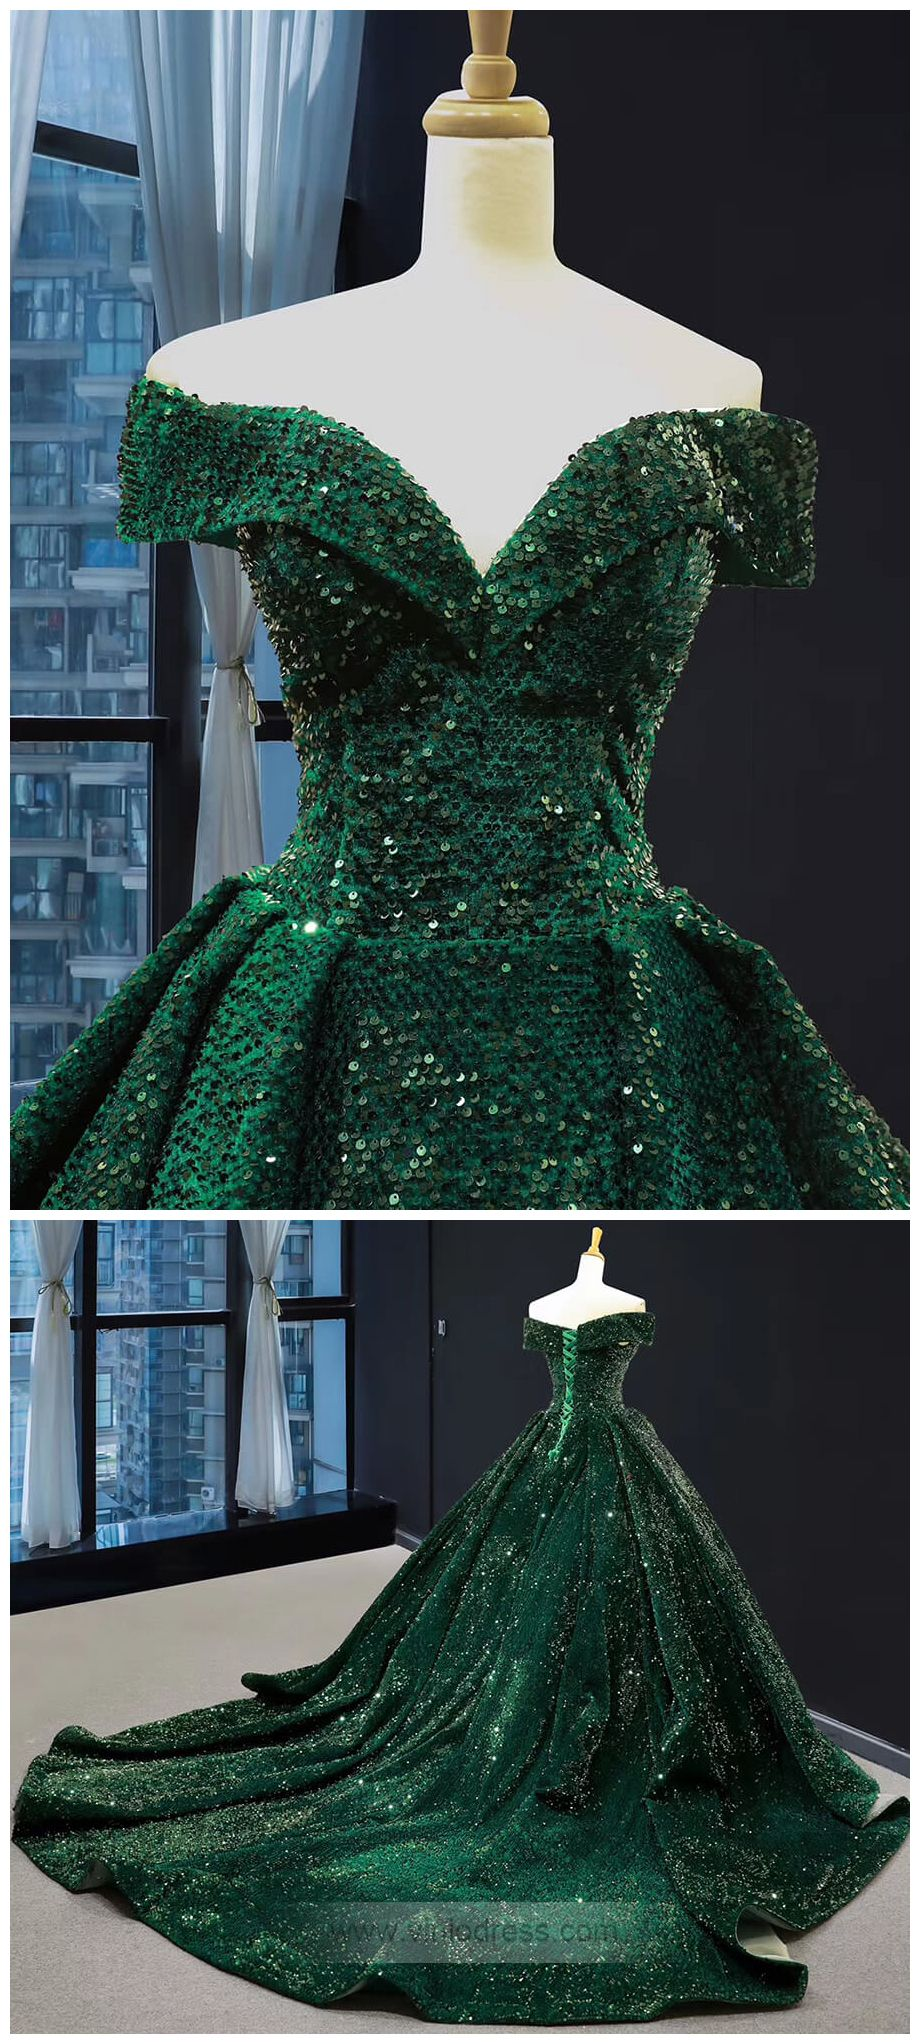 Off The Shoulder Green Prom Dresses Plus Size Vintage Ball Gowns Fd1304 Ball Gowns Green Prom Dress Vintage Ball Gowns [ 2044 x 920 Pixel ]